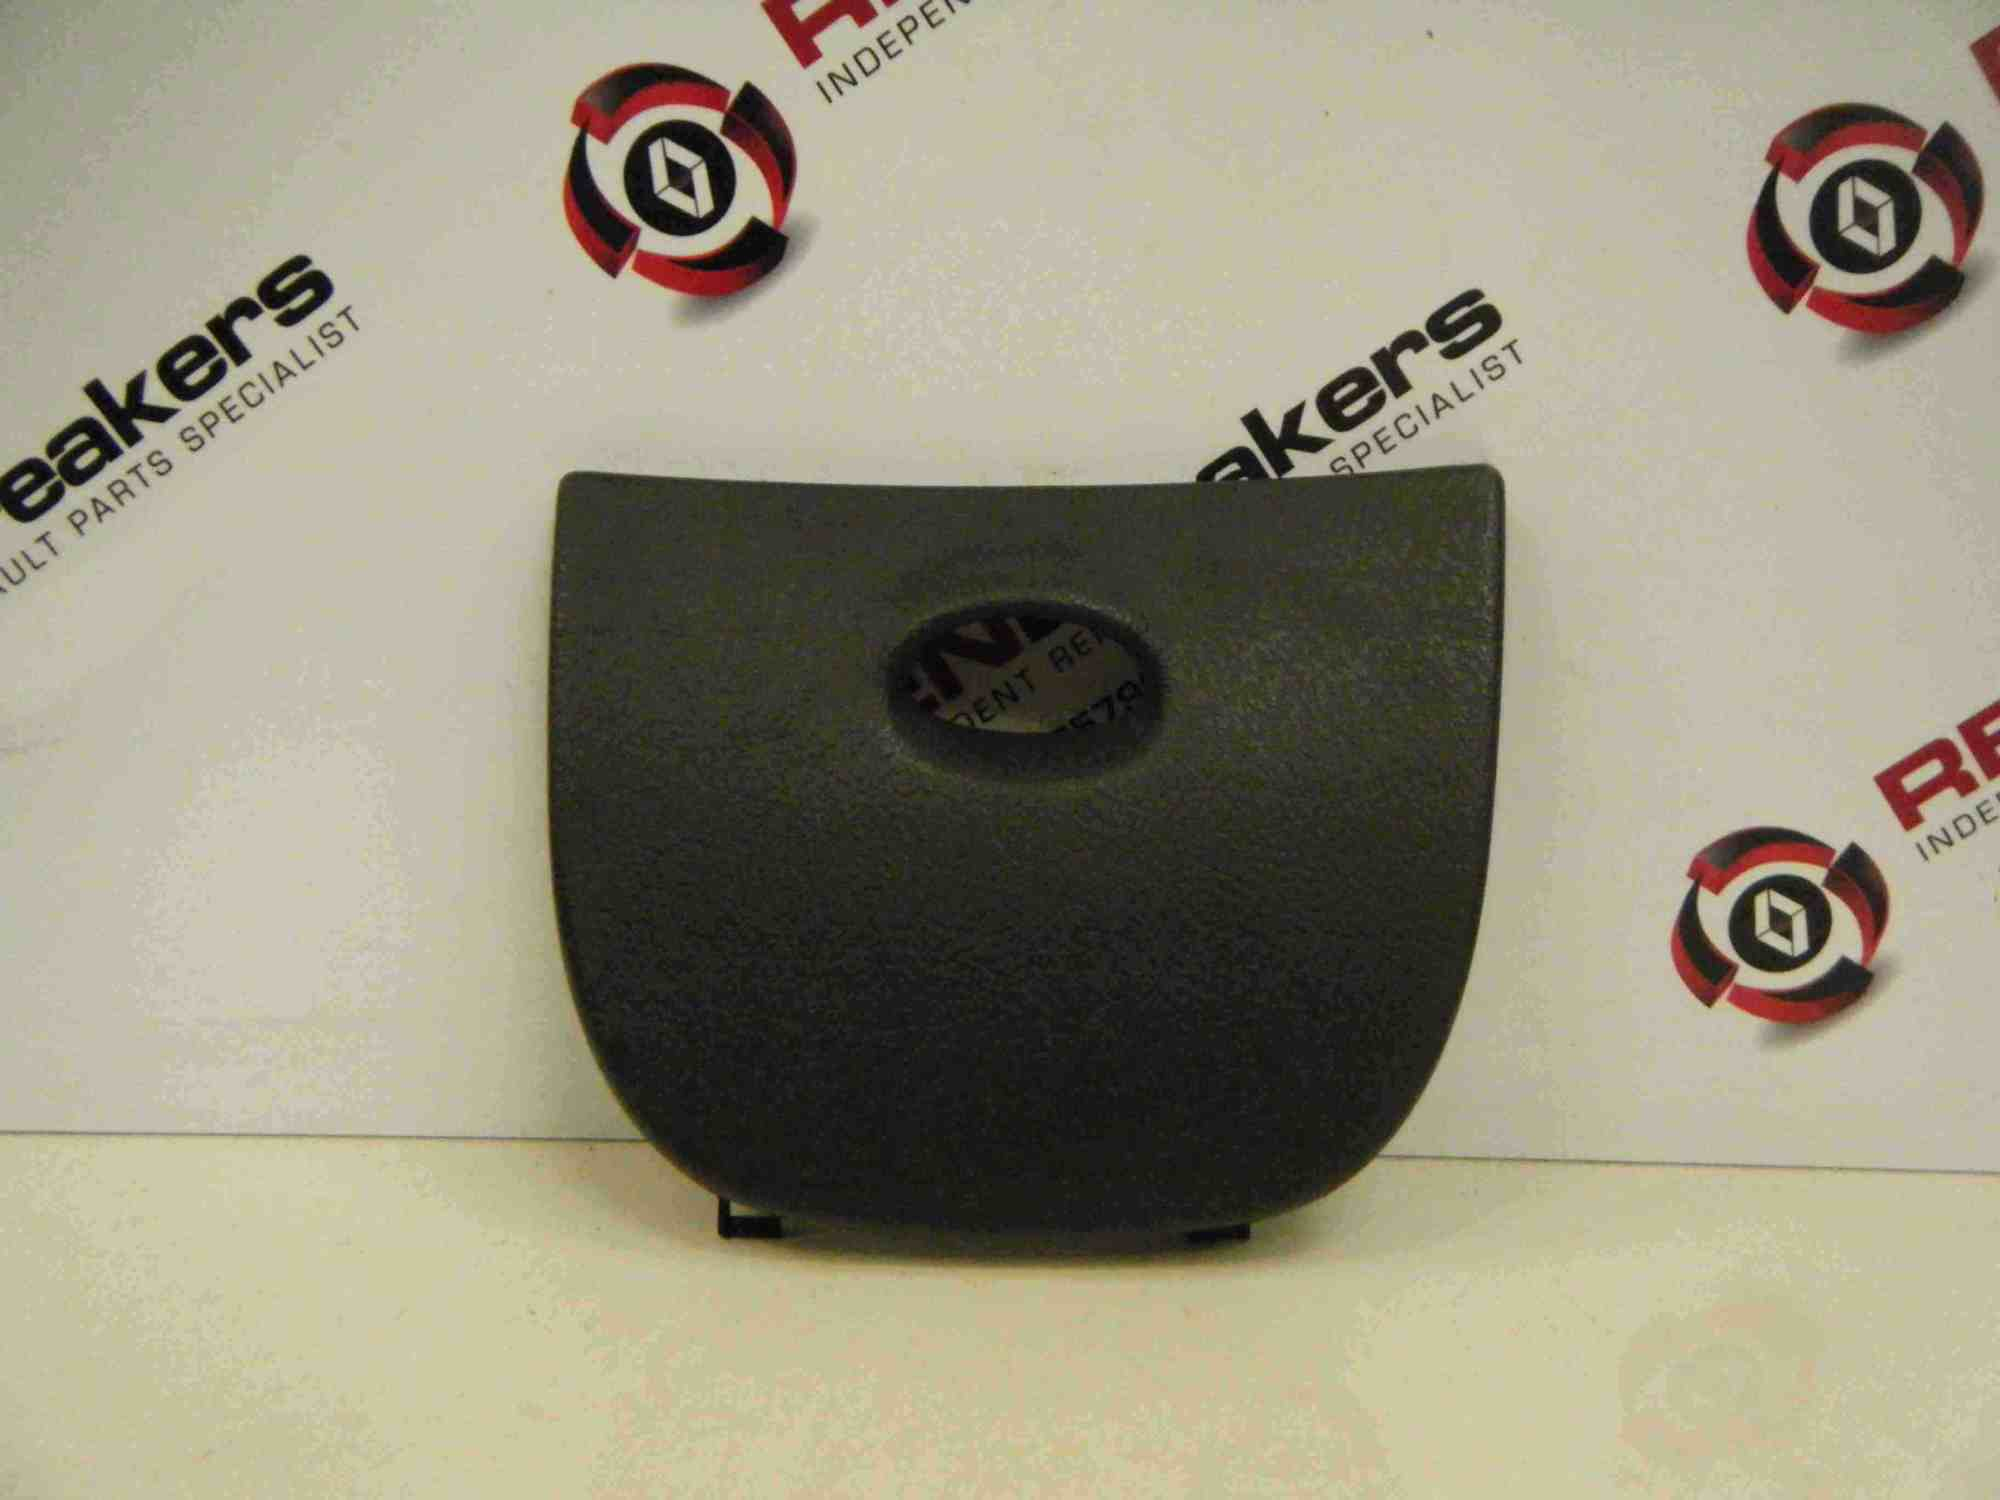 hight resolution of renault megane 1999 2003 fuse box relay cover plastic trim 2010 renault megane renault megane gt